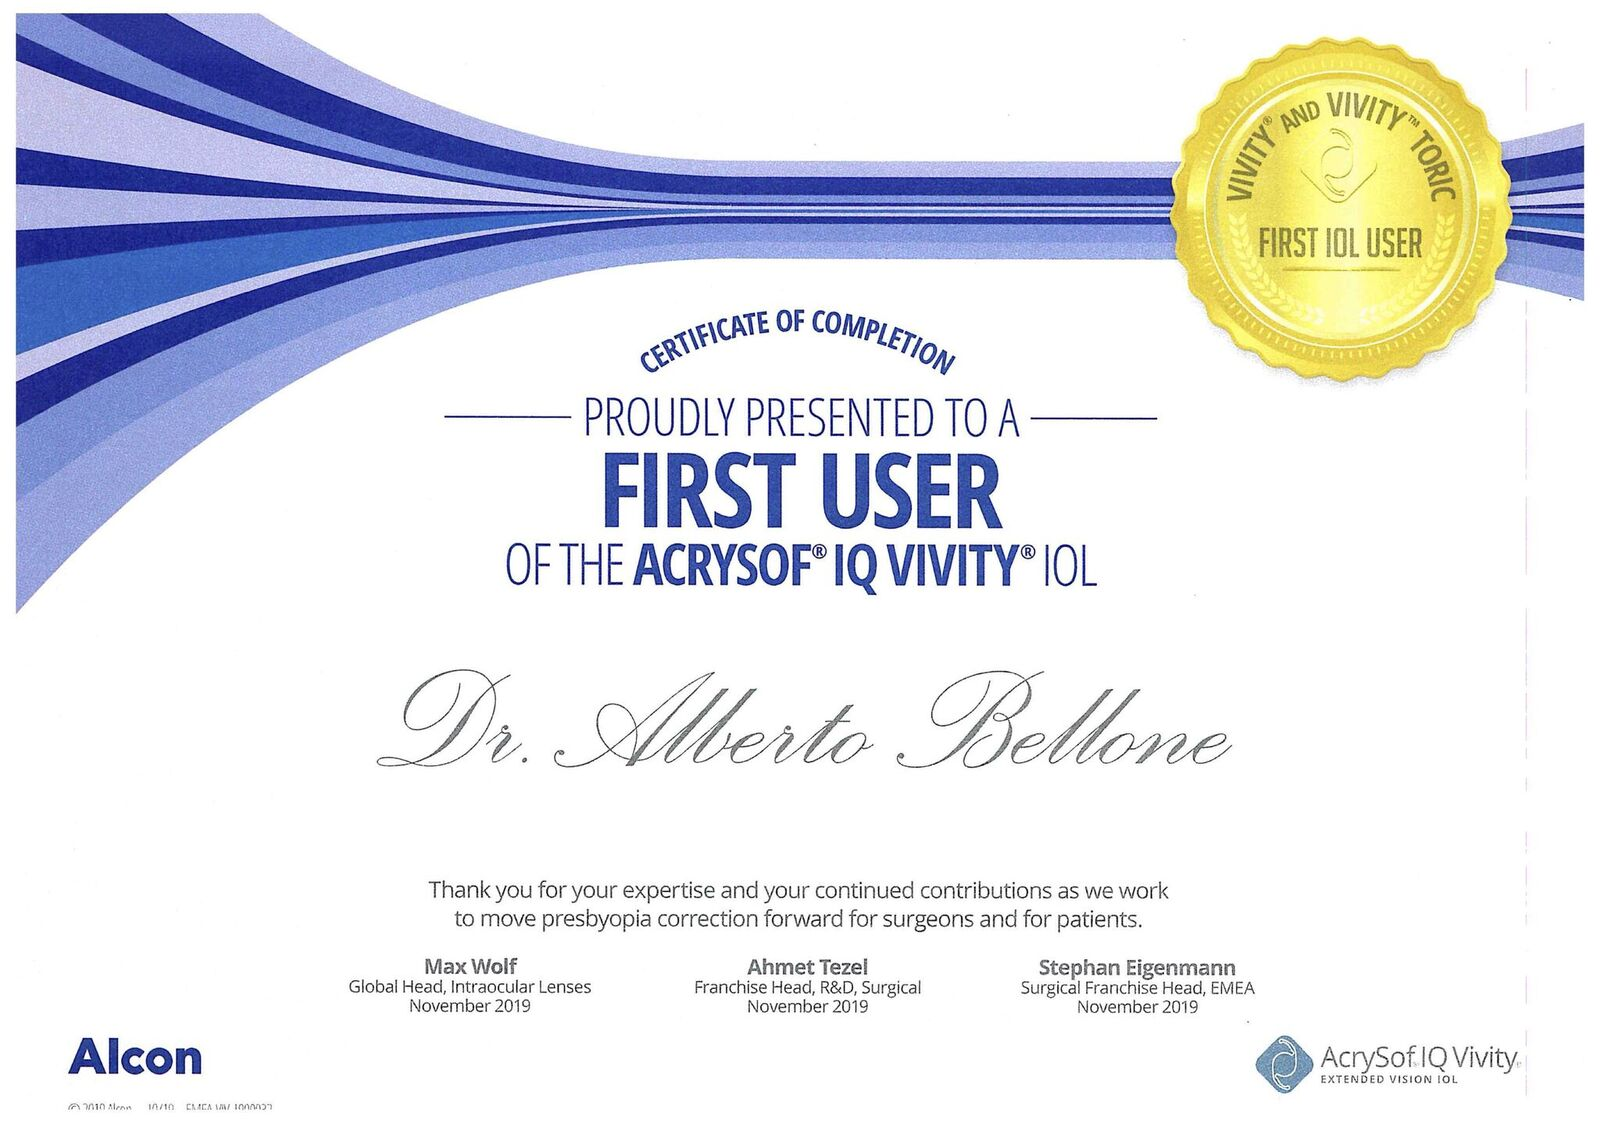 acrysof iq vivity first user certificate